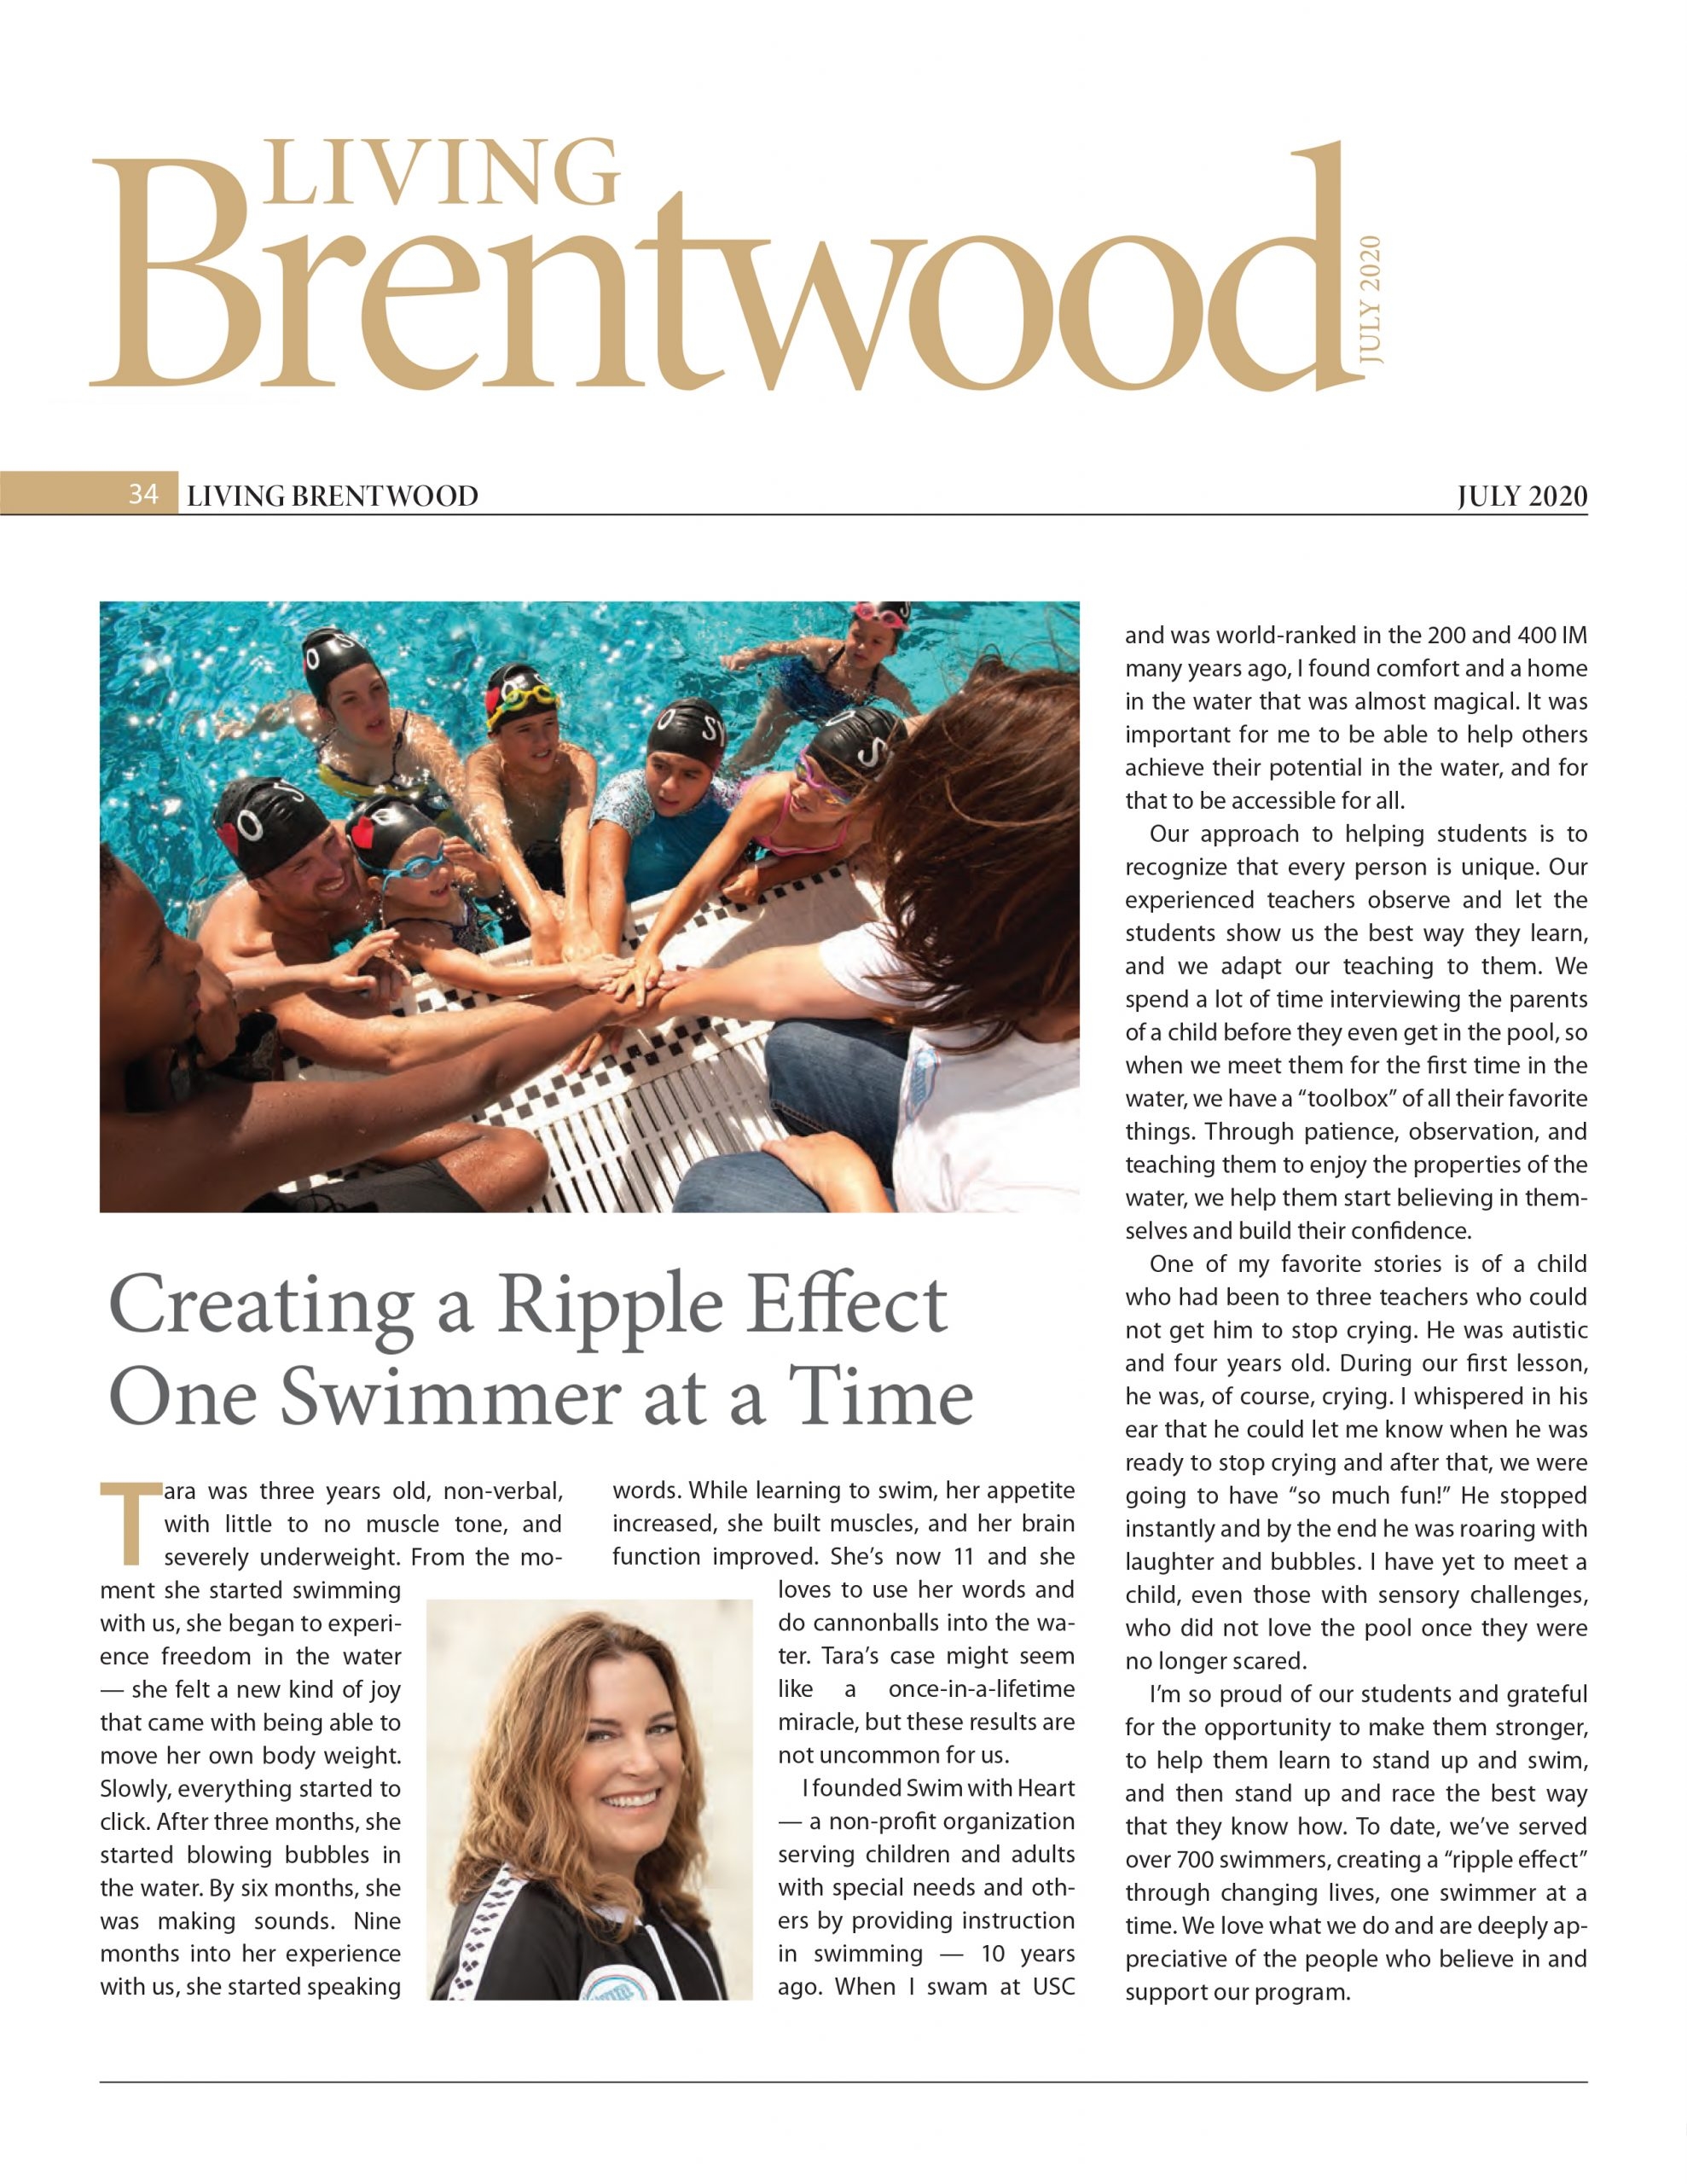 LivingBrentwood - Swim with Heart